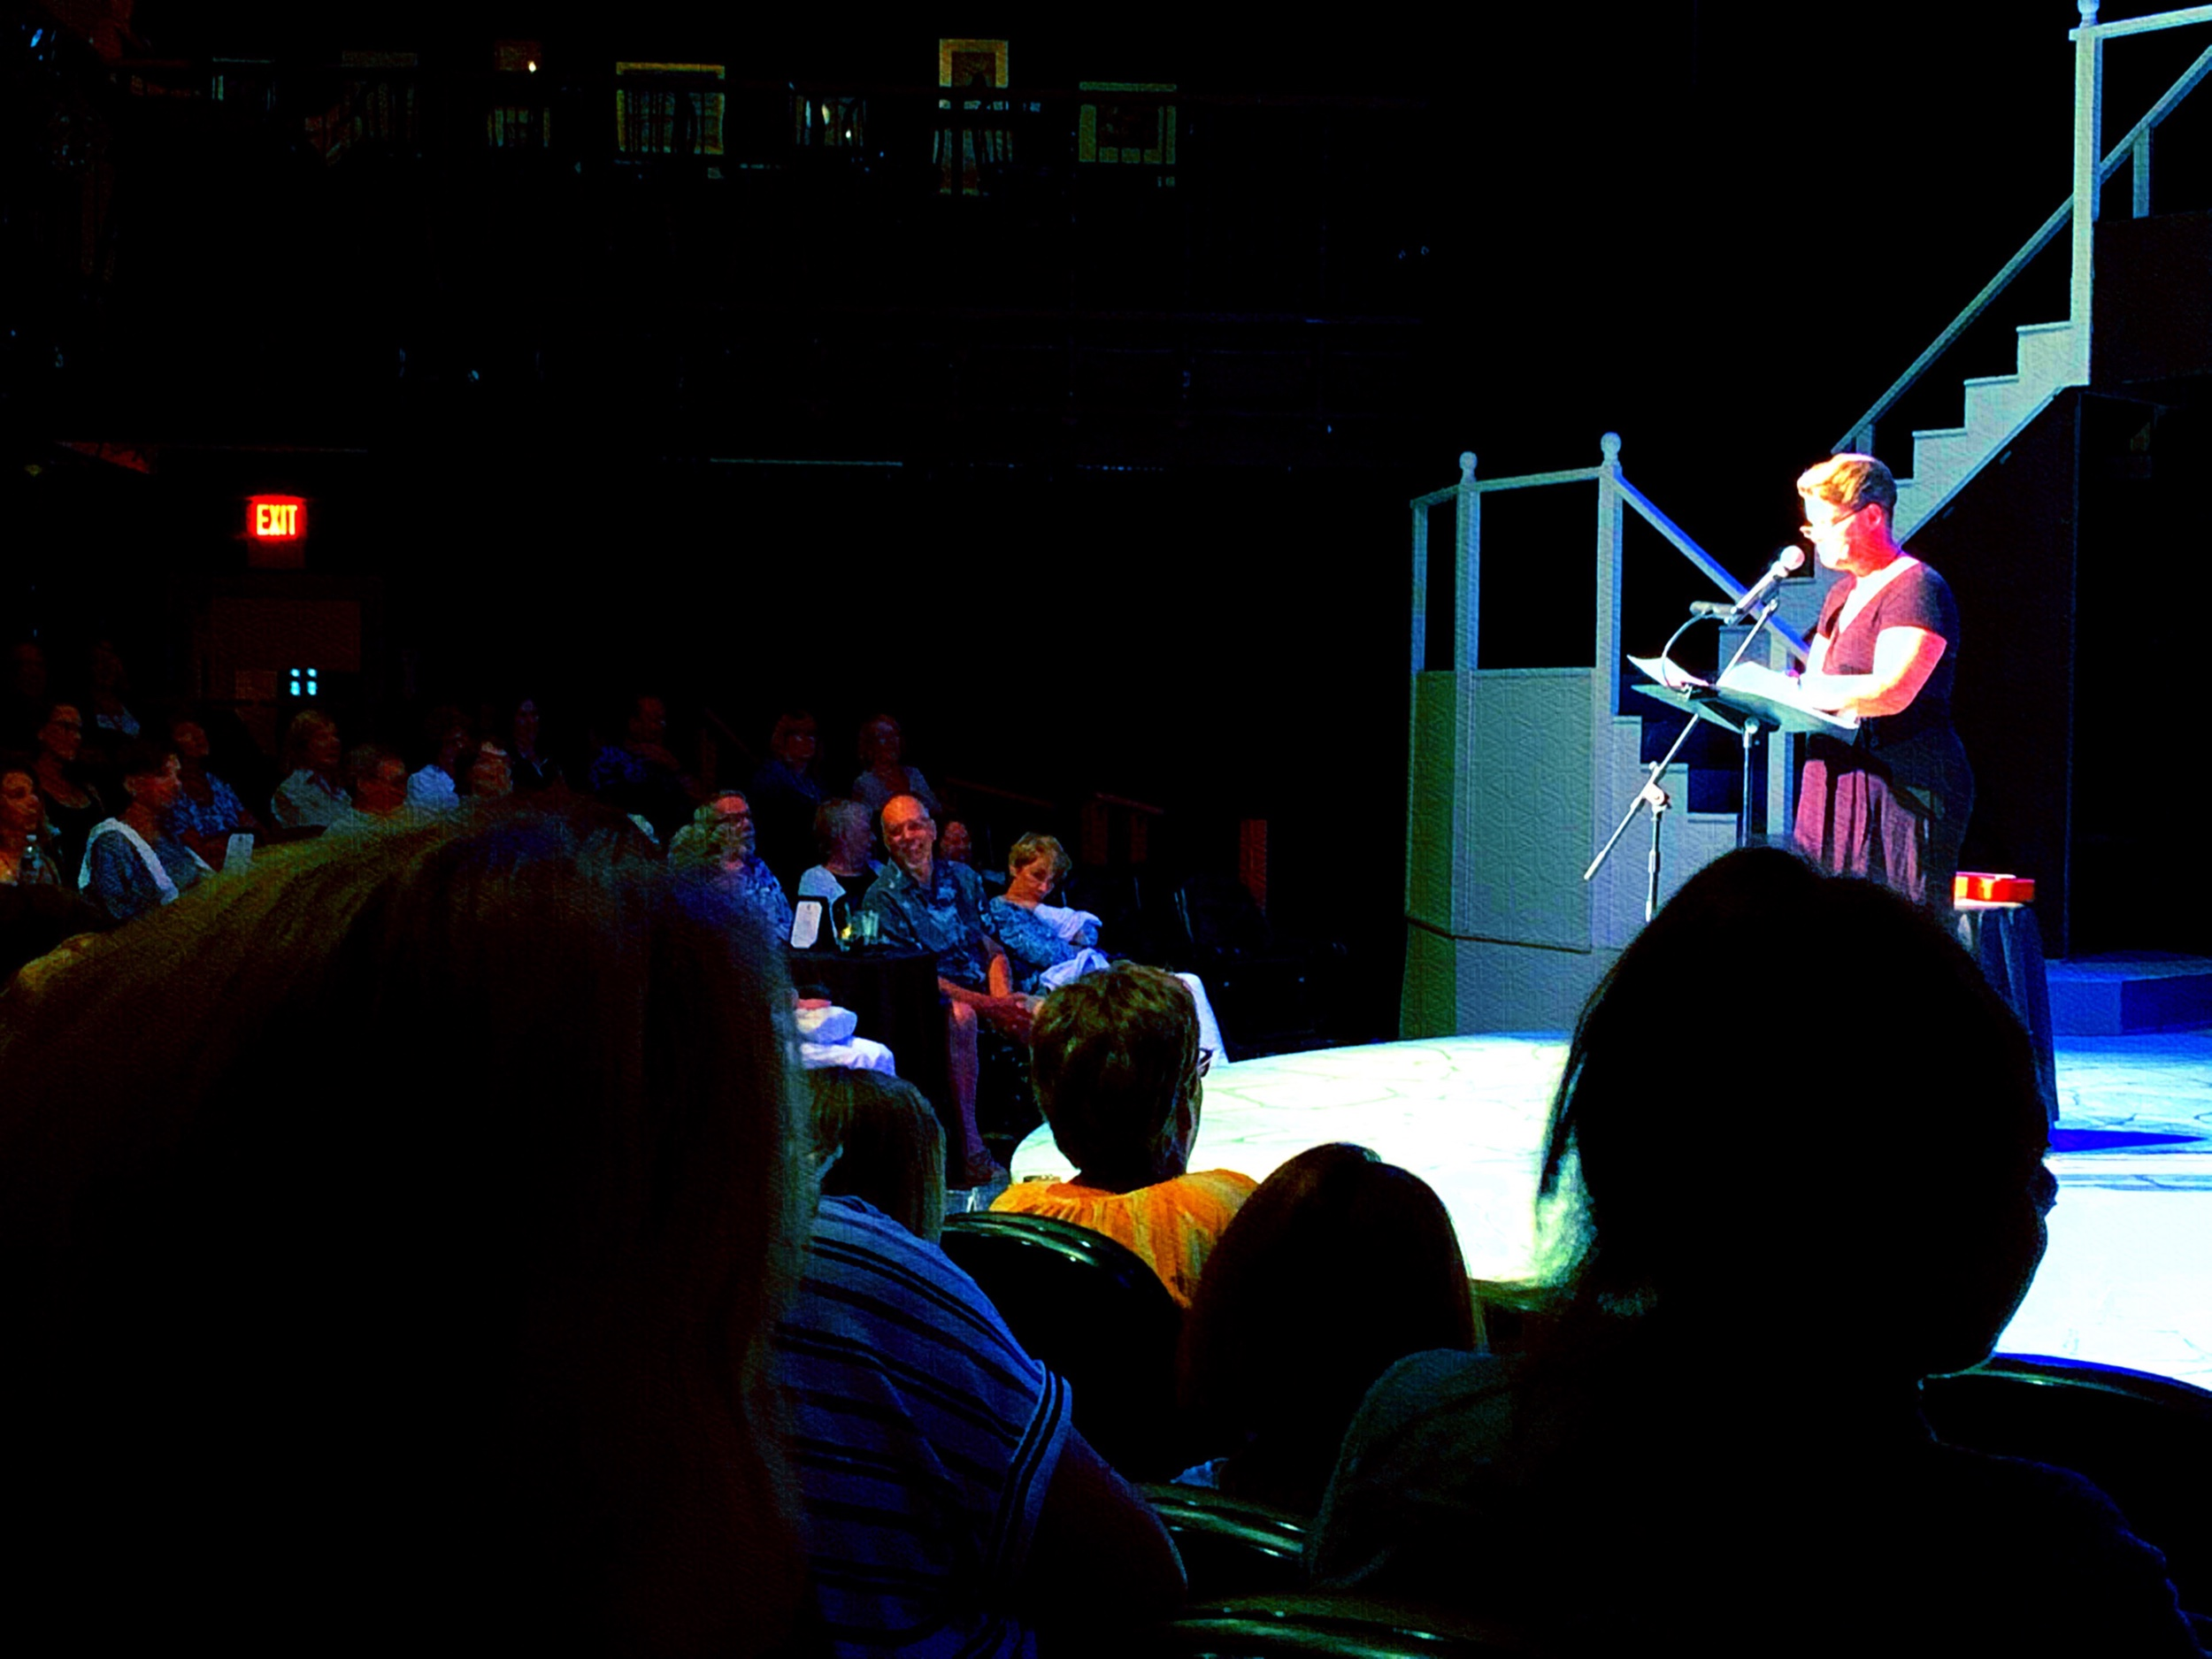 July 16, 2019 - Christine Rathburn Ernst, A.K.A. the Fat Ass Cancer Bitch, opened her 1 woman show at the Cotuit Center for the Arts last night to a full house! Awesome show! Catch it if you can!